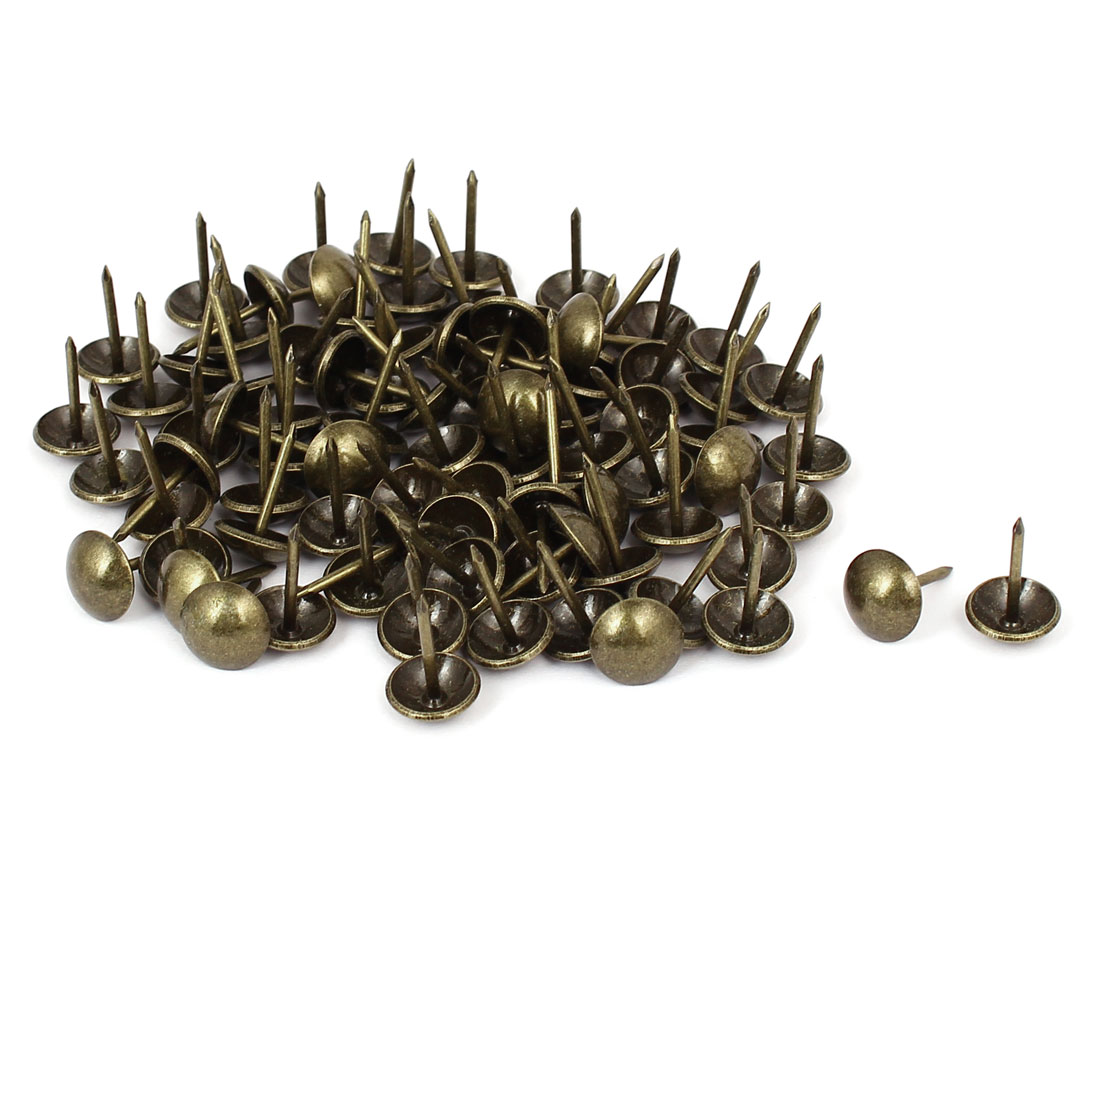 "7/16"" Head Dia 17mm Height Upholstery Tack Nail Push Pin Bronze Tone 100pcs"